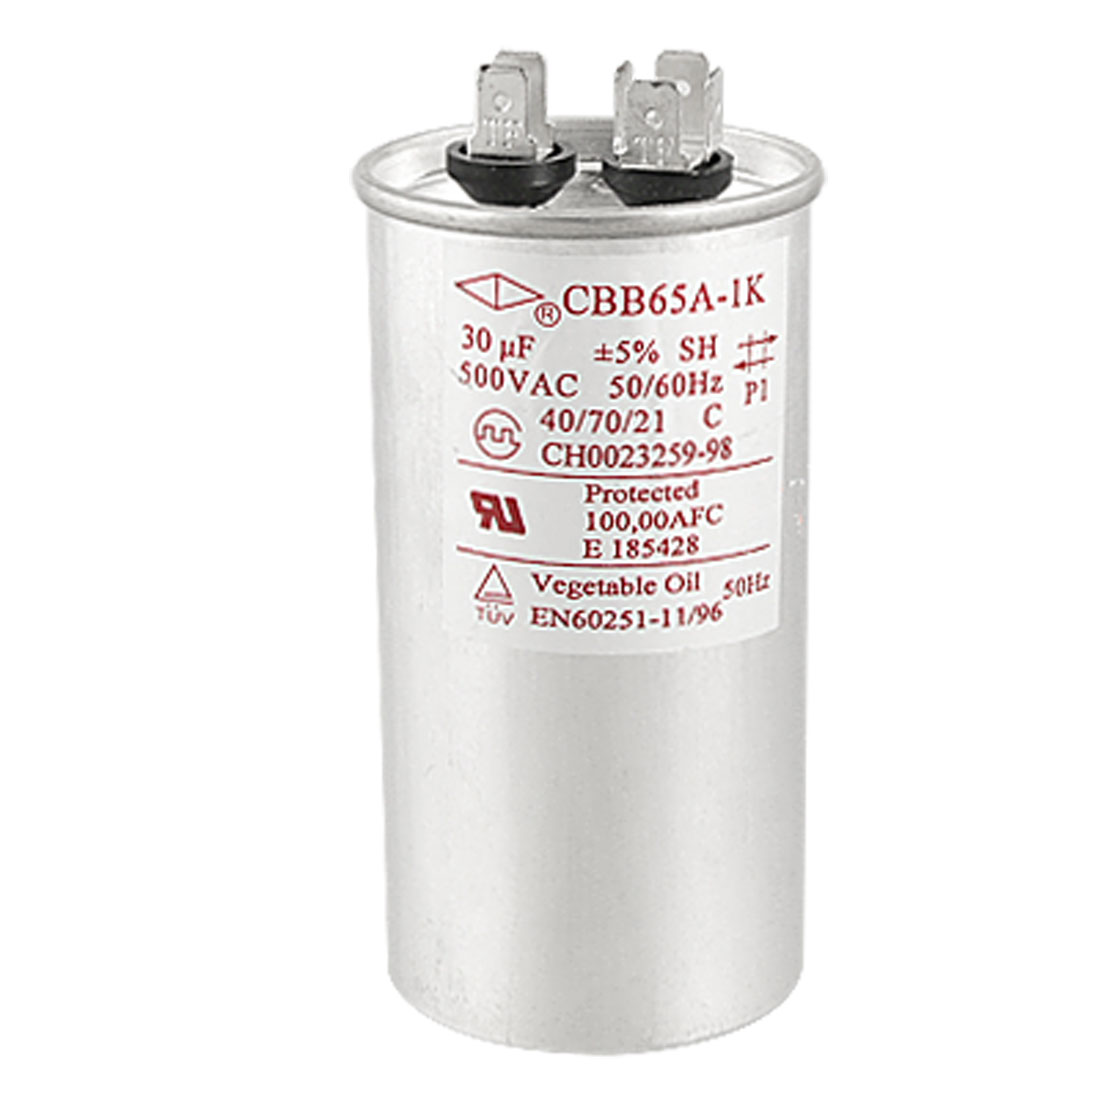 Air Conditioner AC 500V 30uF Polypropylene Film Motor Capacitor